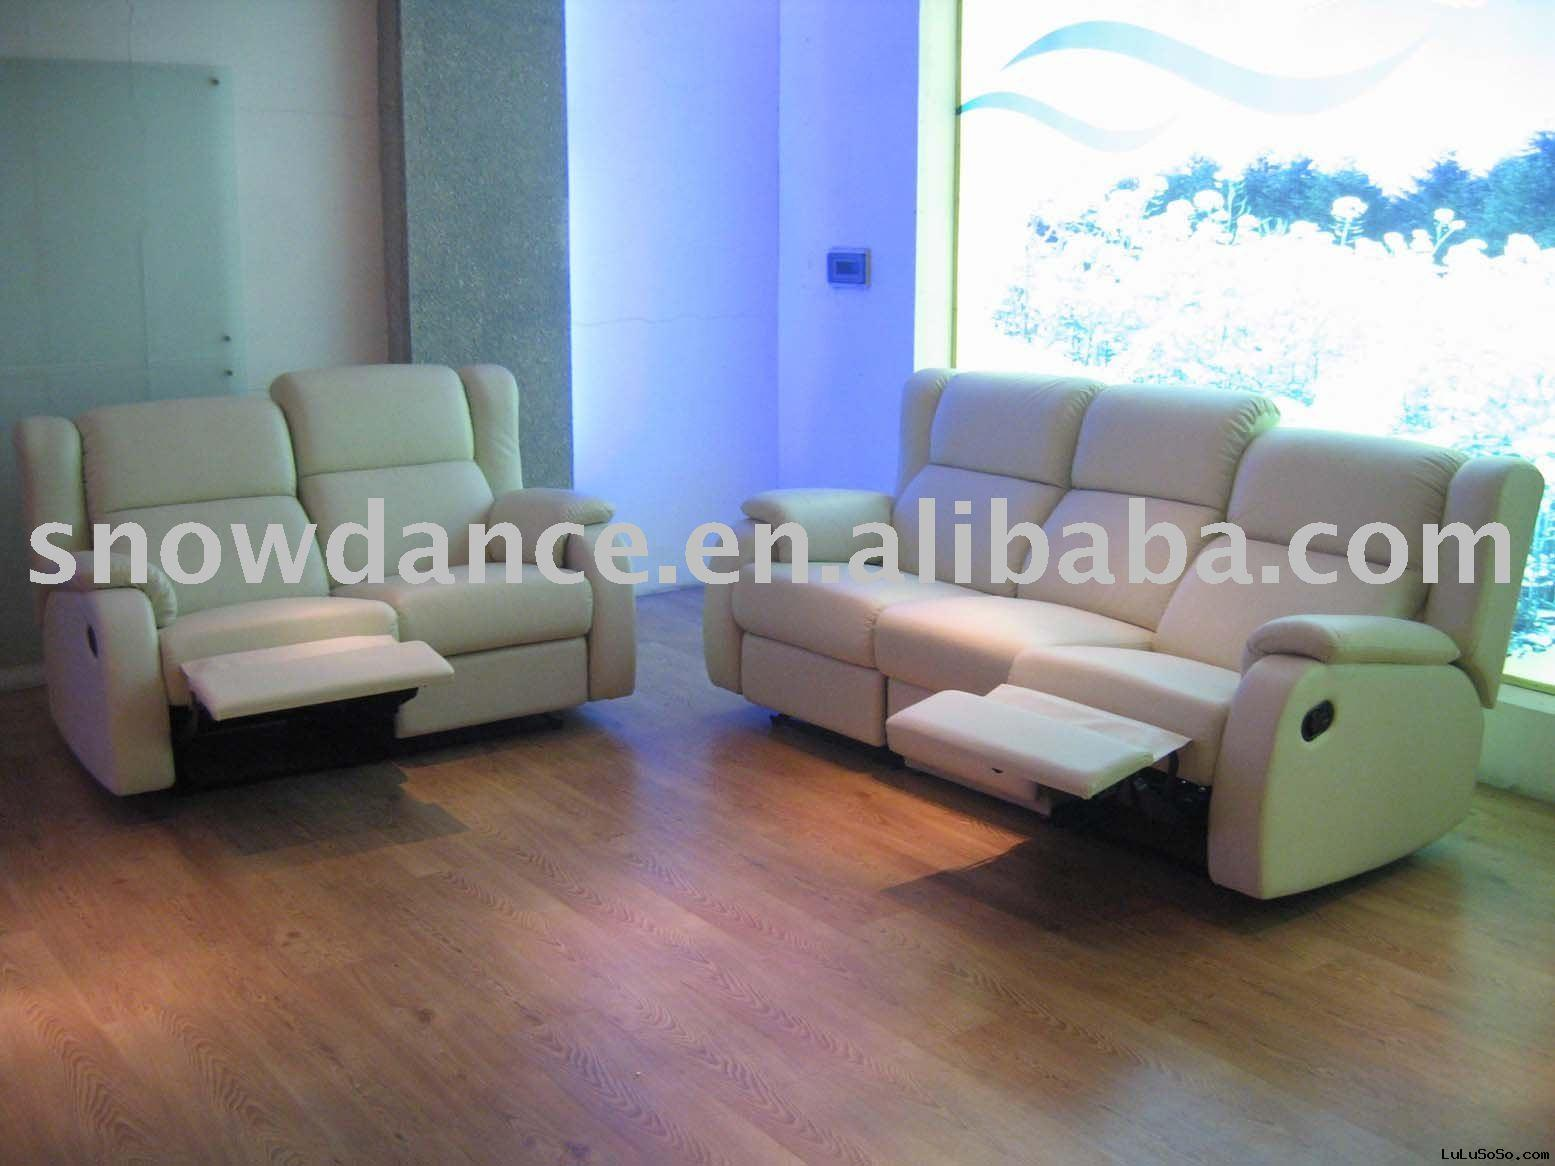 2010 GuangDong Recliner Leather sofa SD5121